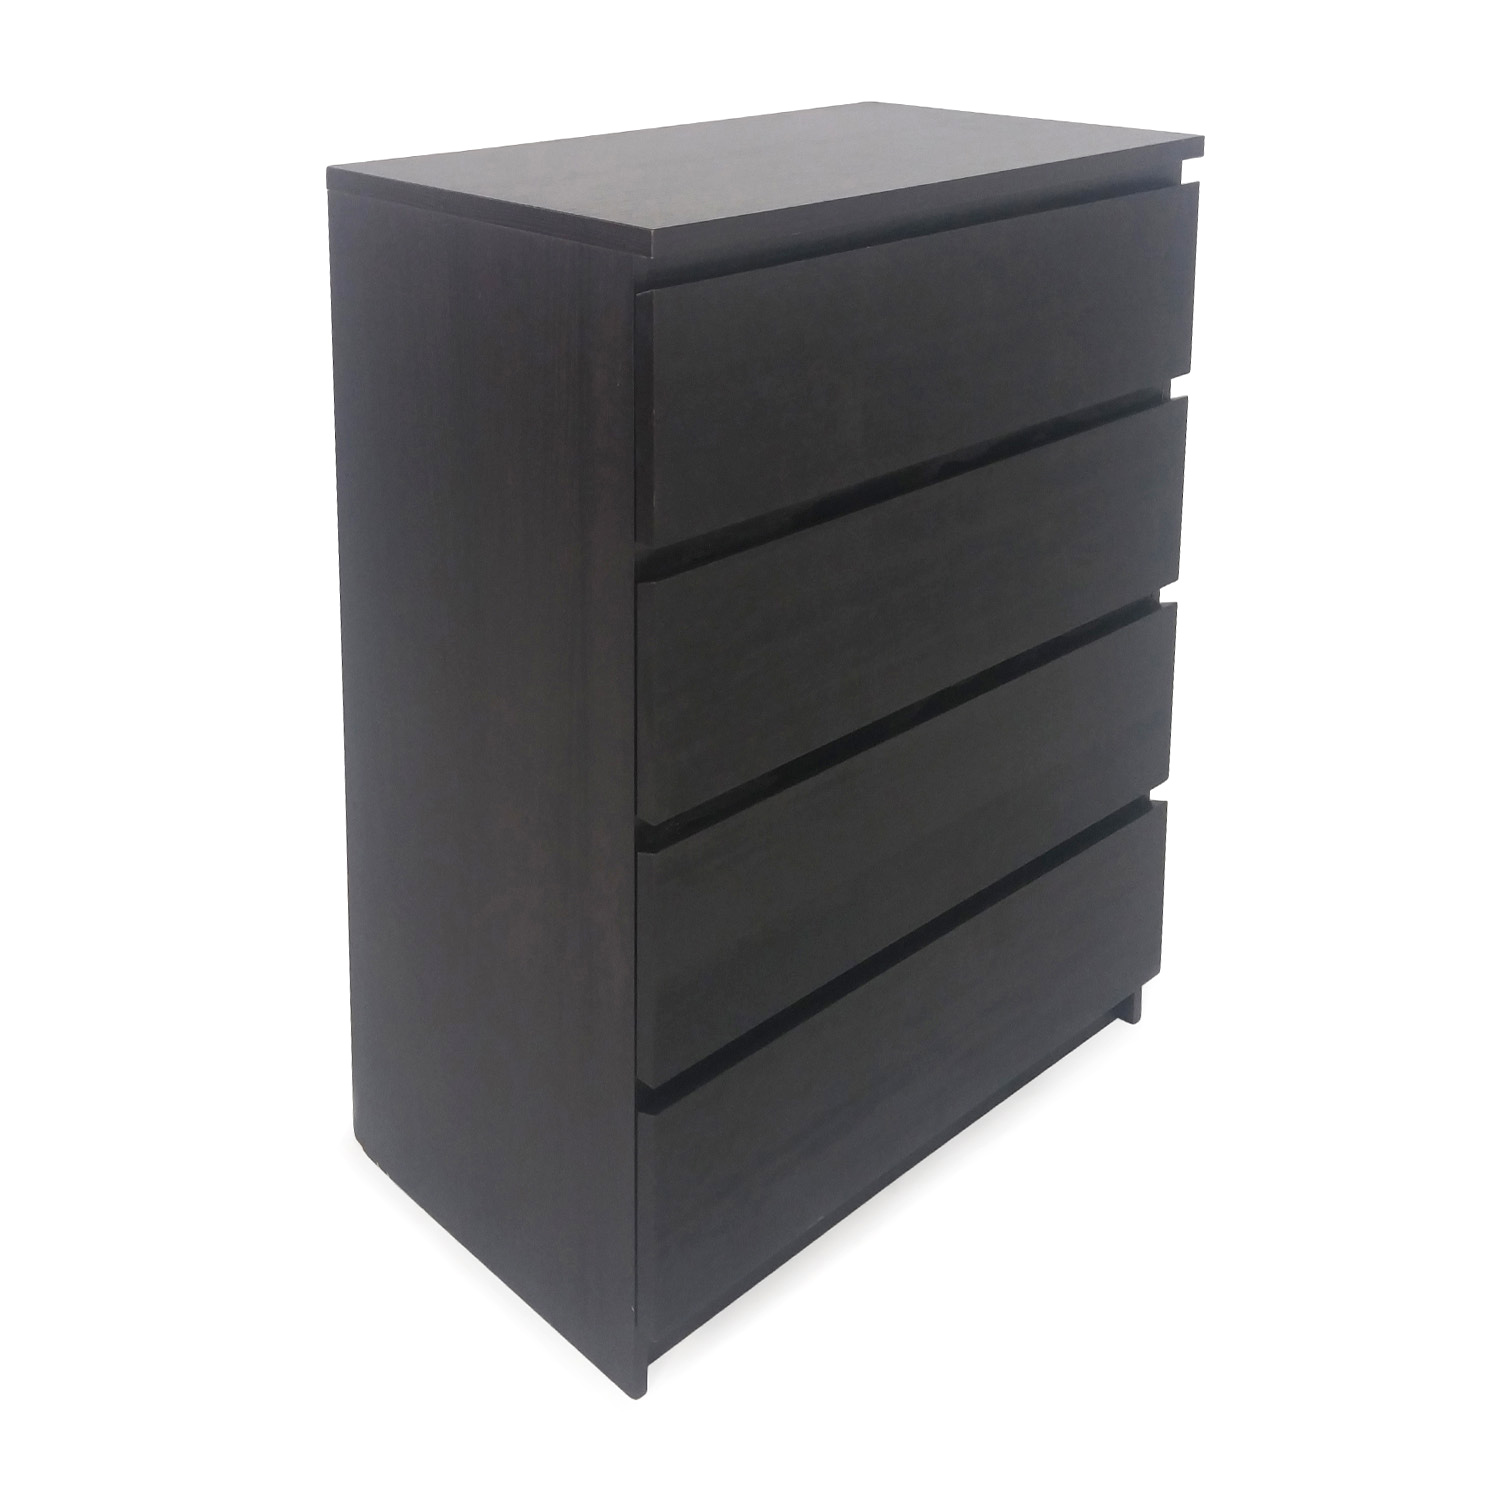 Ikea malm dresser 4 drawer chest of drawers for Ikea schreibtisch malm weiay